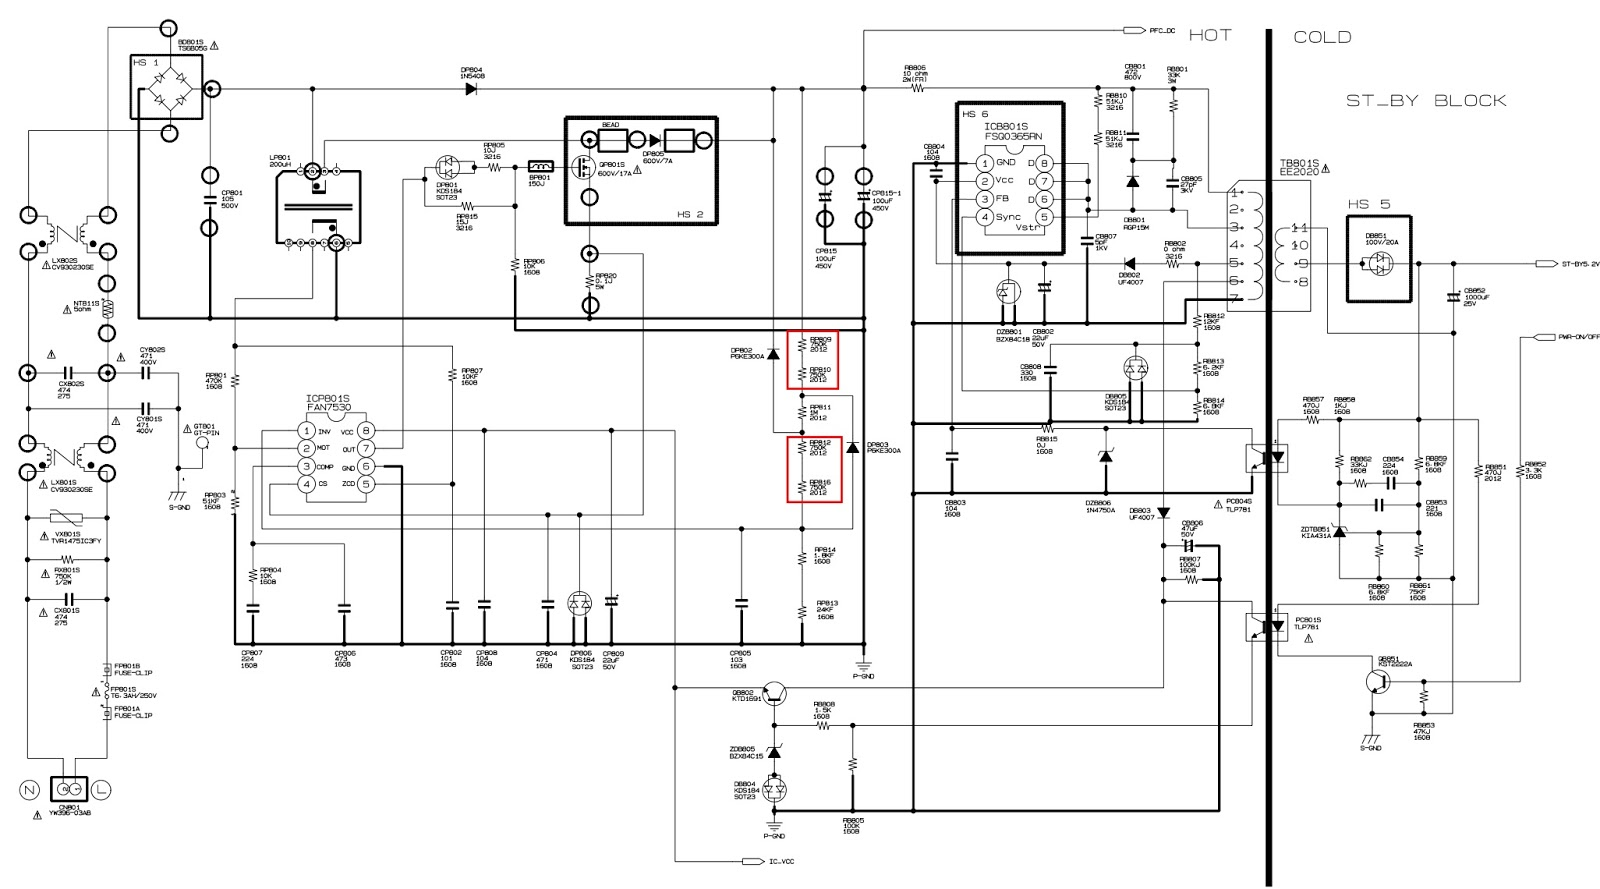 Bn44 00216a Samsung Le32b530p7n Le37a552p3r Lcd Tv Smps Circuit Diagram Click On The To Zoom In